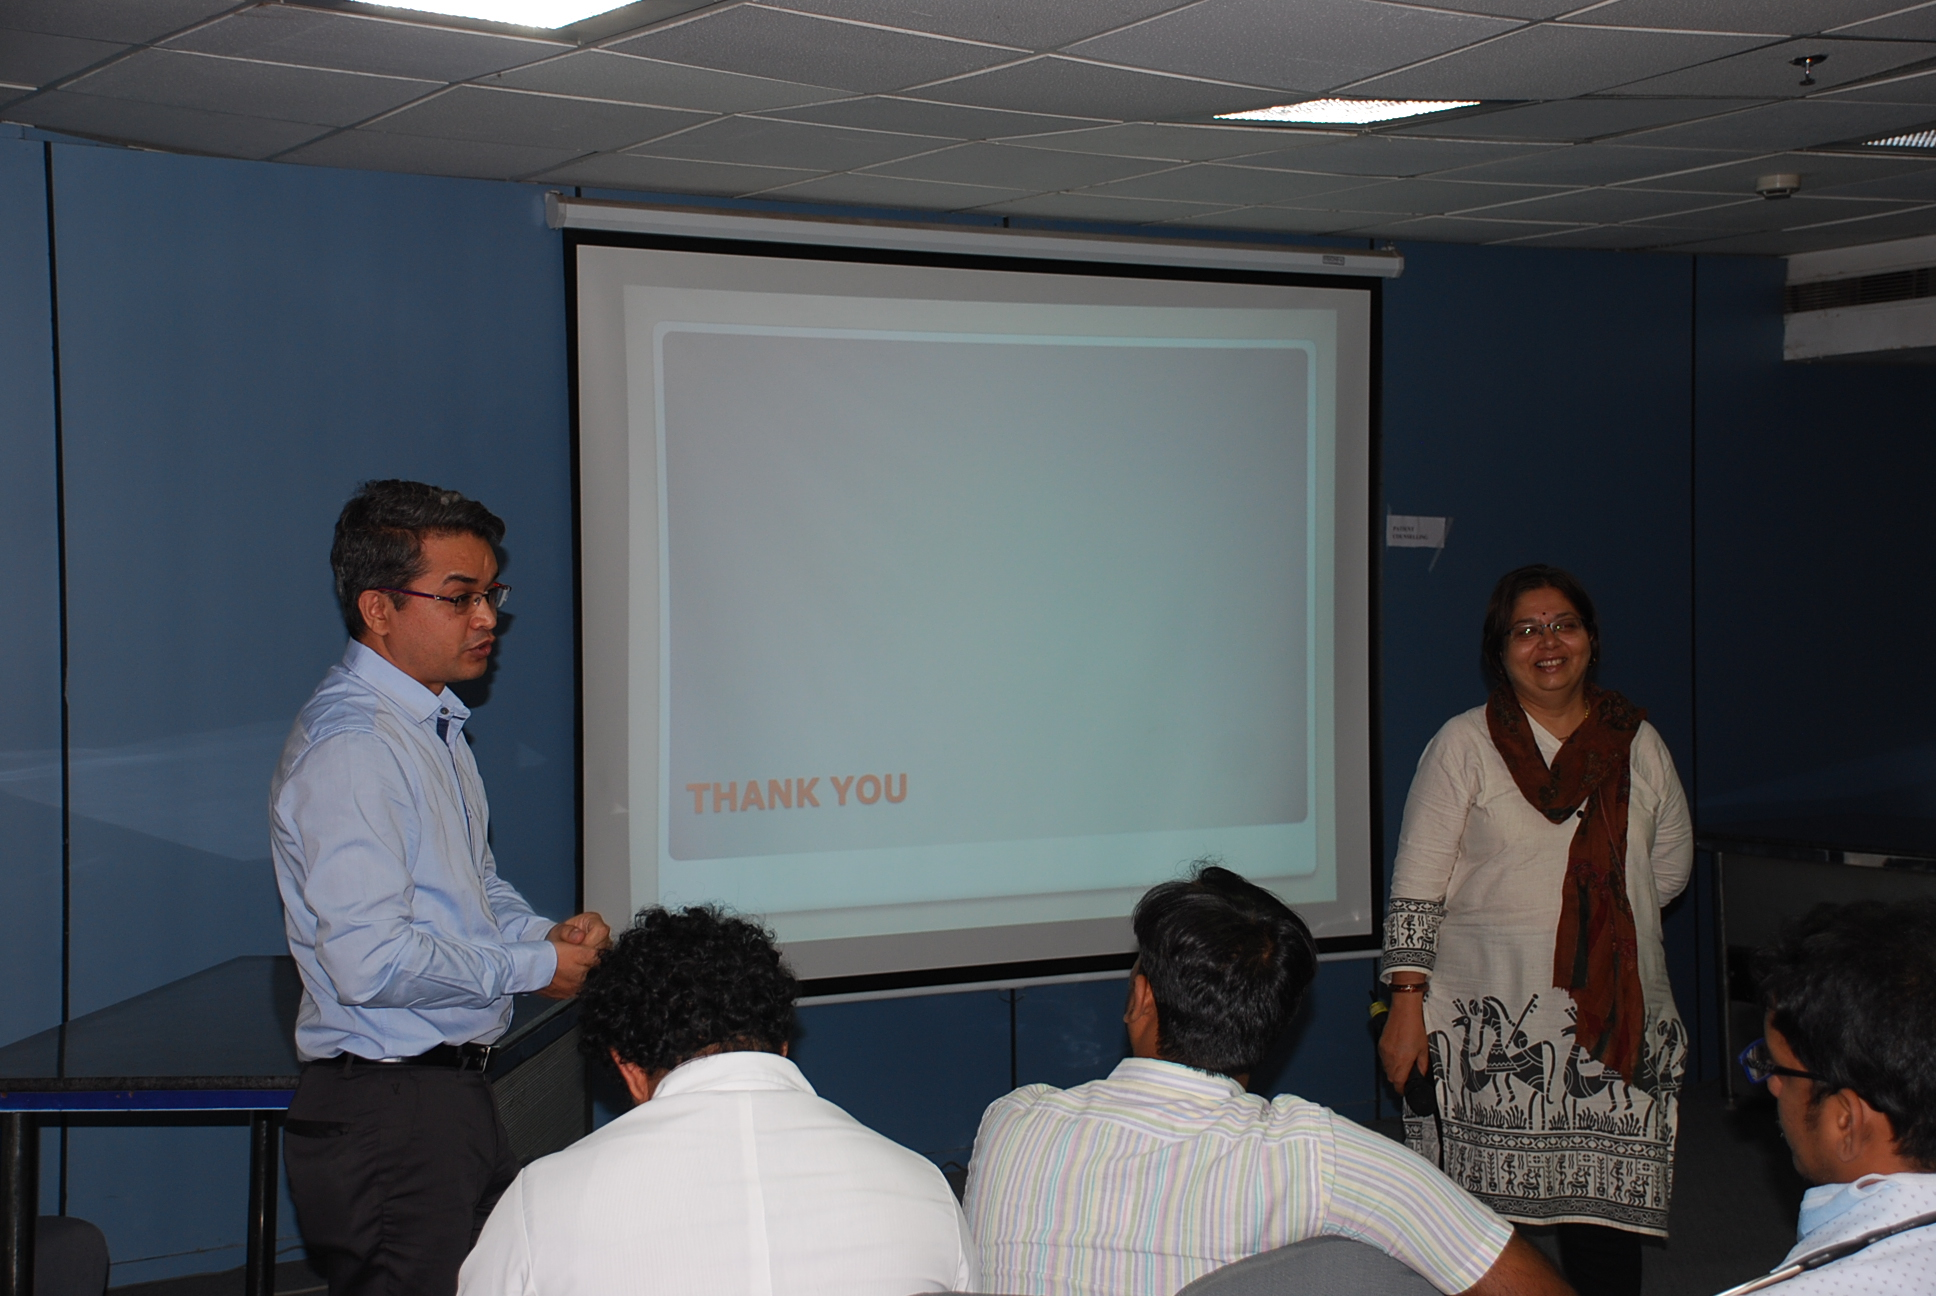 Doctors giving presentation to patients (6)